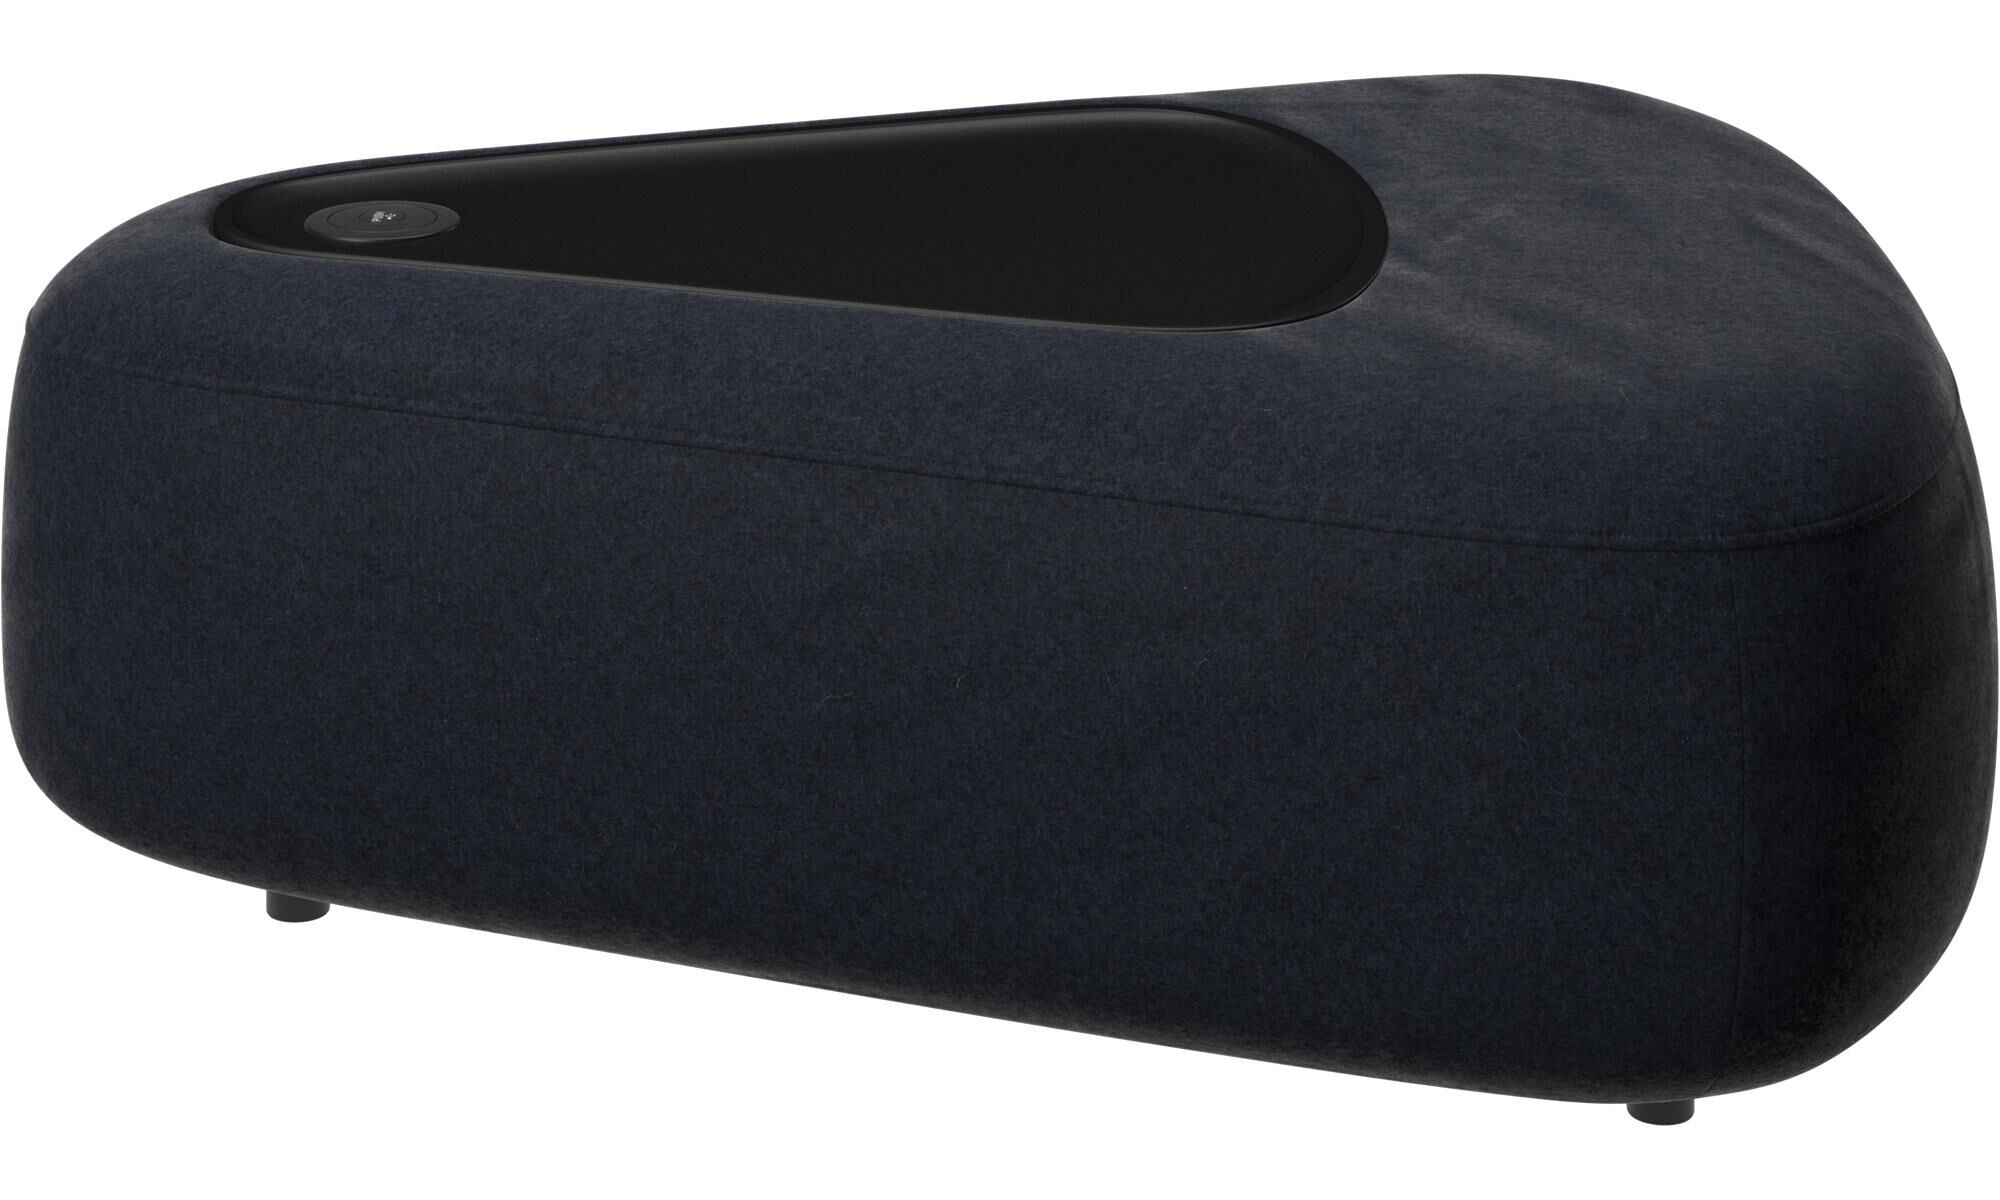 Ottawa triangular pouf with tray with USB charger